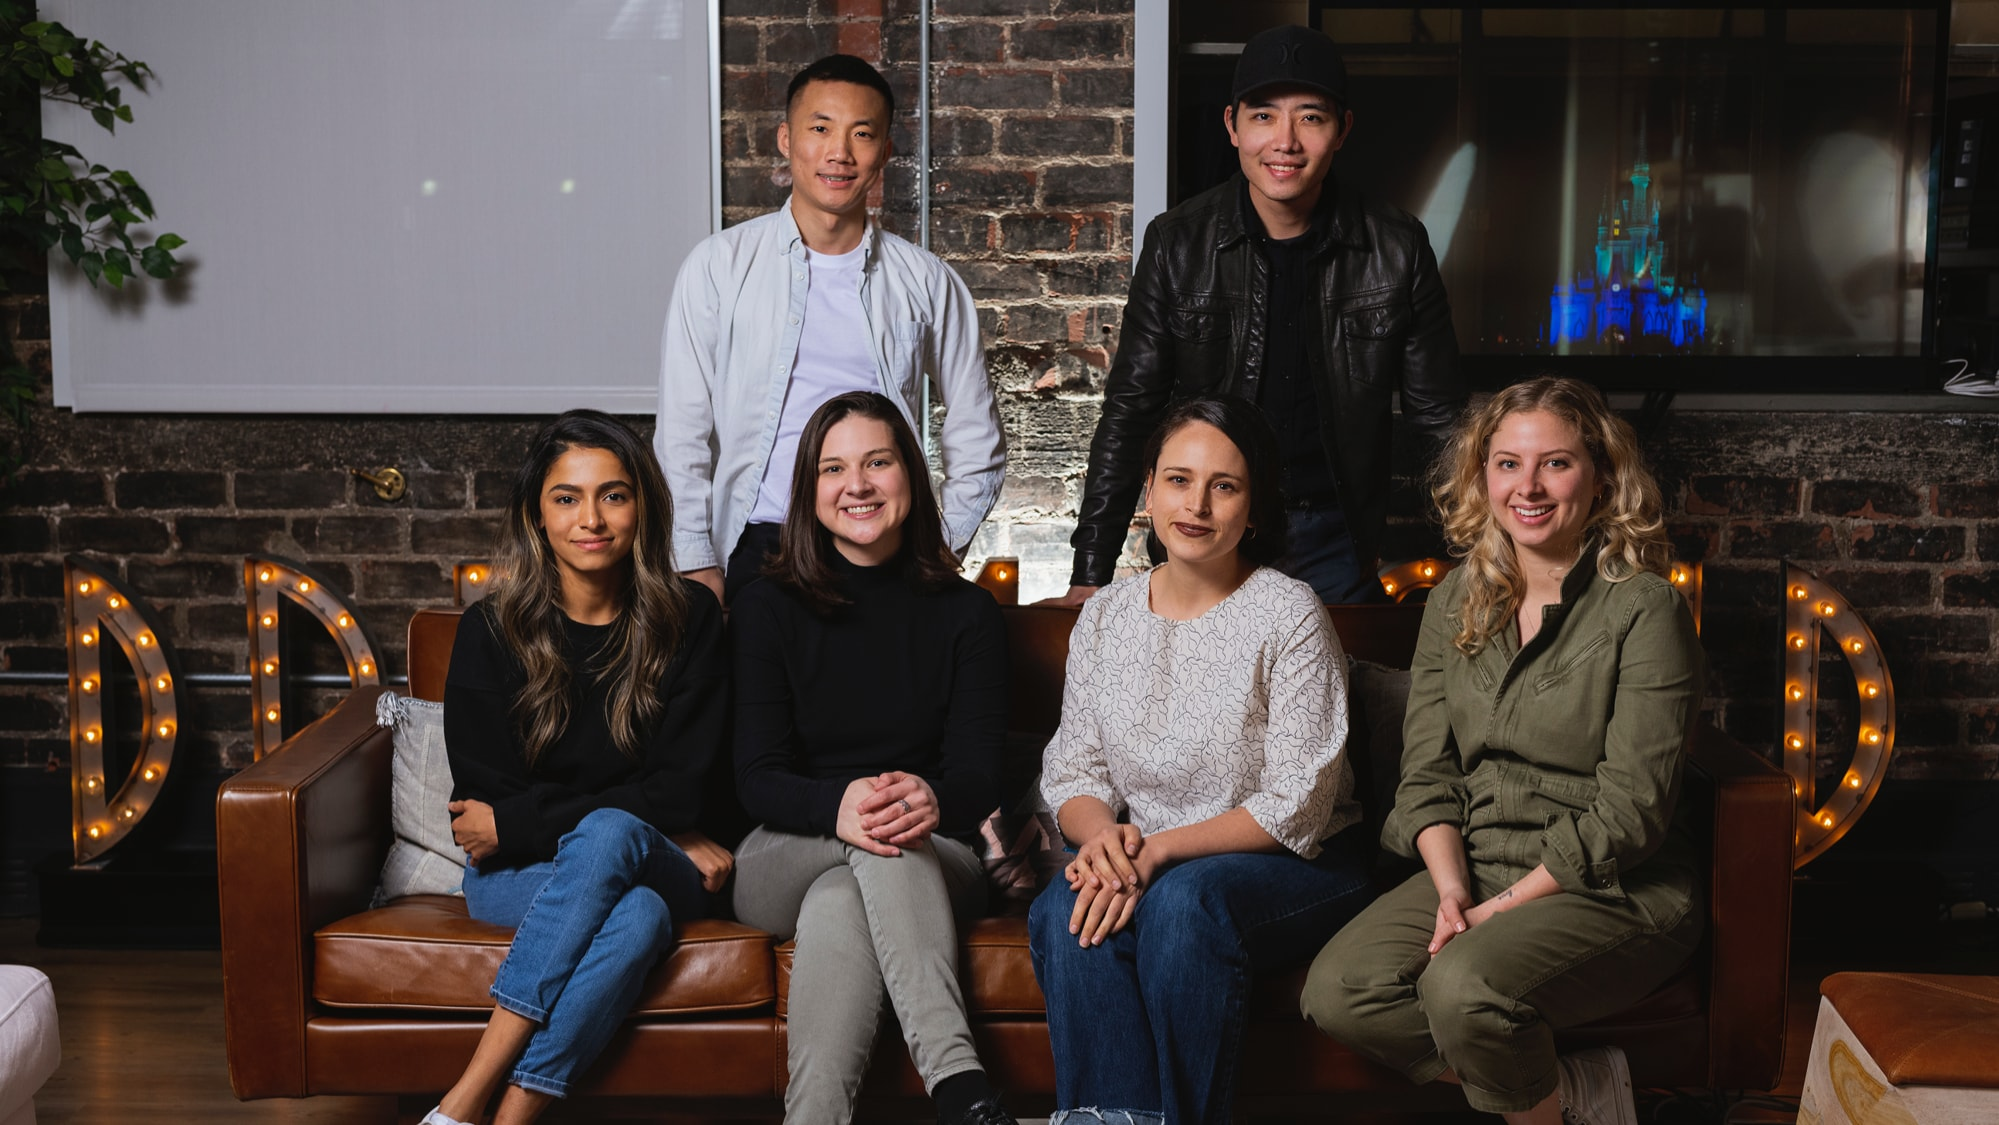 """Disney's """"LAUNCHPAD"""" Filmmakers Seated, l. to r.:  Aqsa Altaf (""""American Eid""""); Anne Marie Pace (""""Growing Fangs""""); Jessica Mendez Siqeiros (""""The Last of the Chupacabras""""); Stefanie Abel Horowitz (""""Let's Be Tigers"""").  Standing, l. to r.:  Moxie Peng (""""The Little Prince(ss)""""); Hao Zheng (""""Dinner is Served""""). Photo by Derek Lee. © 2021 Disney Enterprises, Inc. All Rights Reserved."""